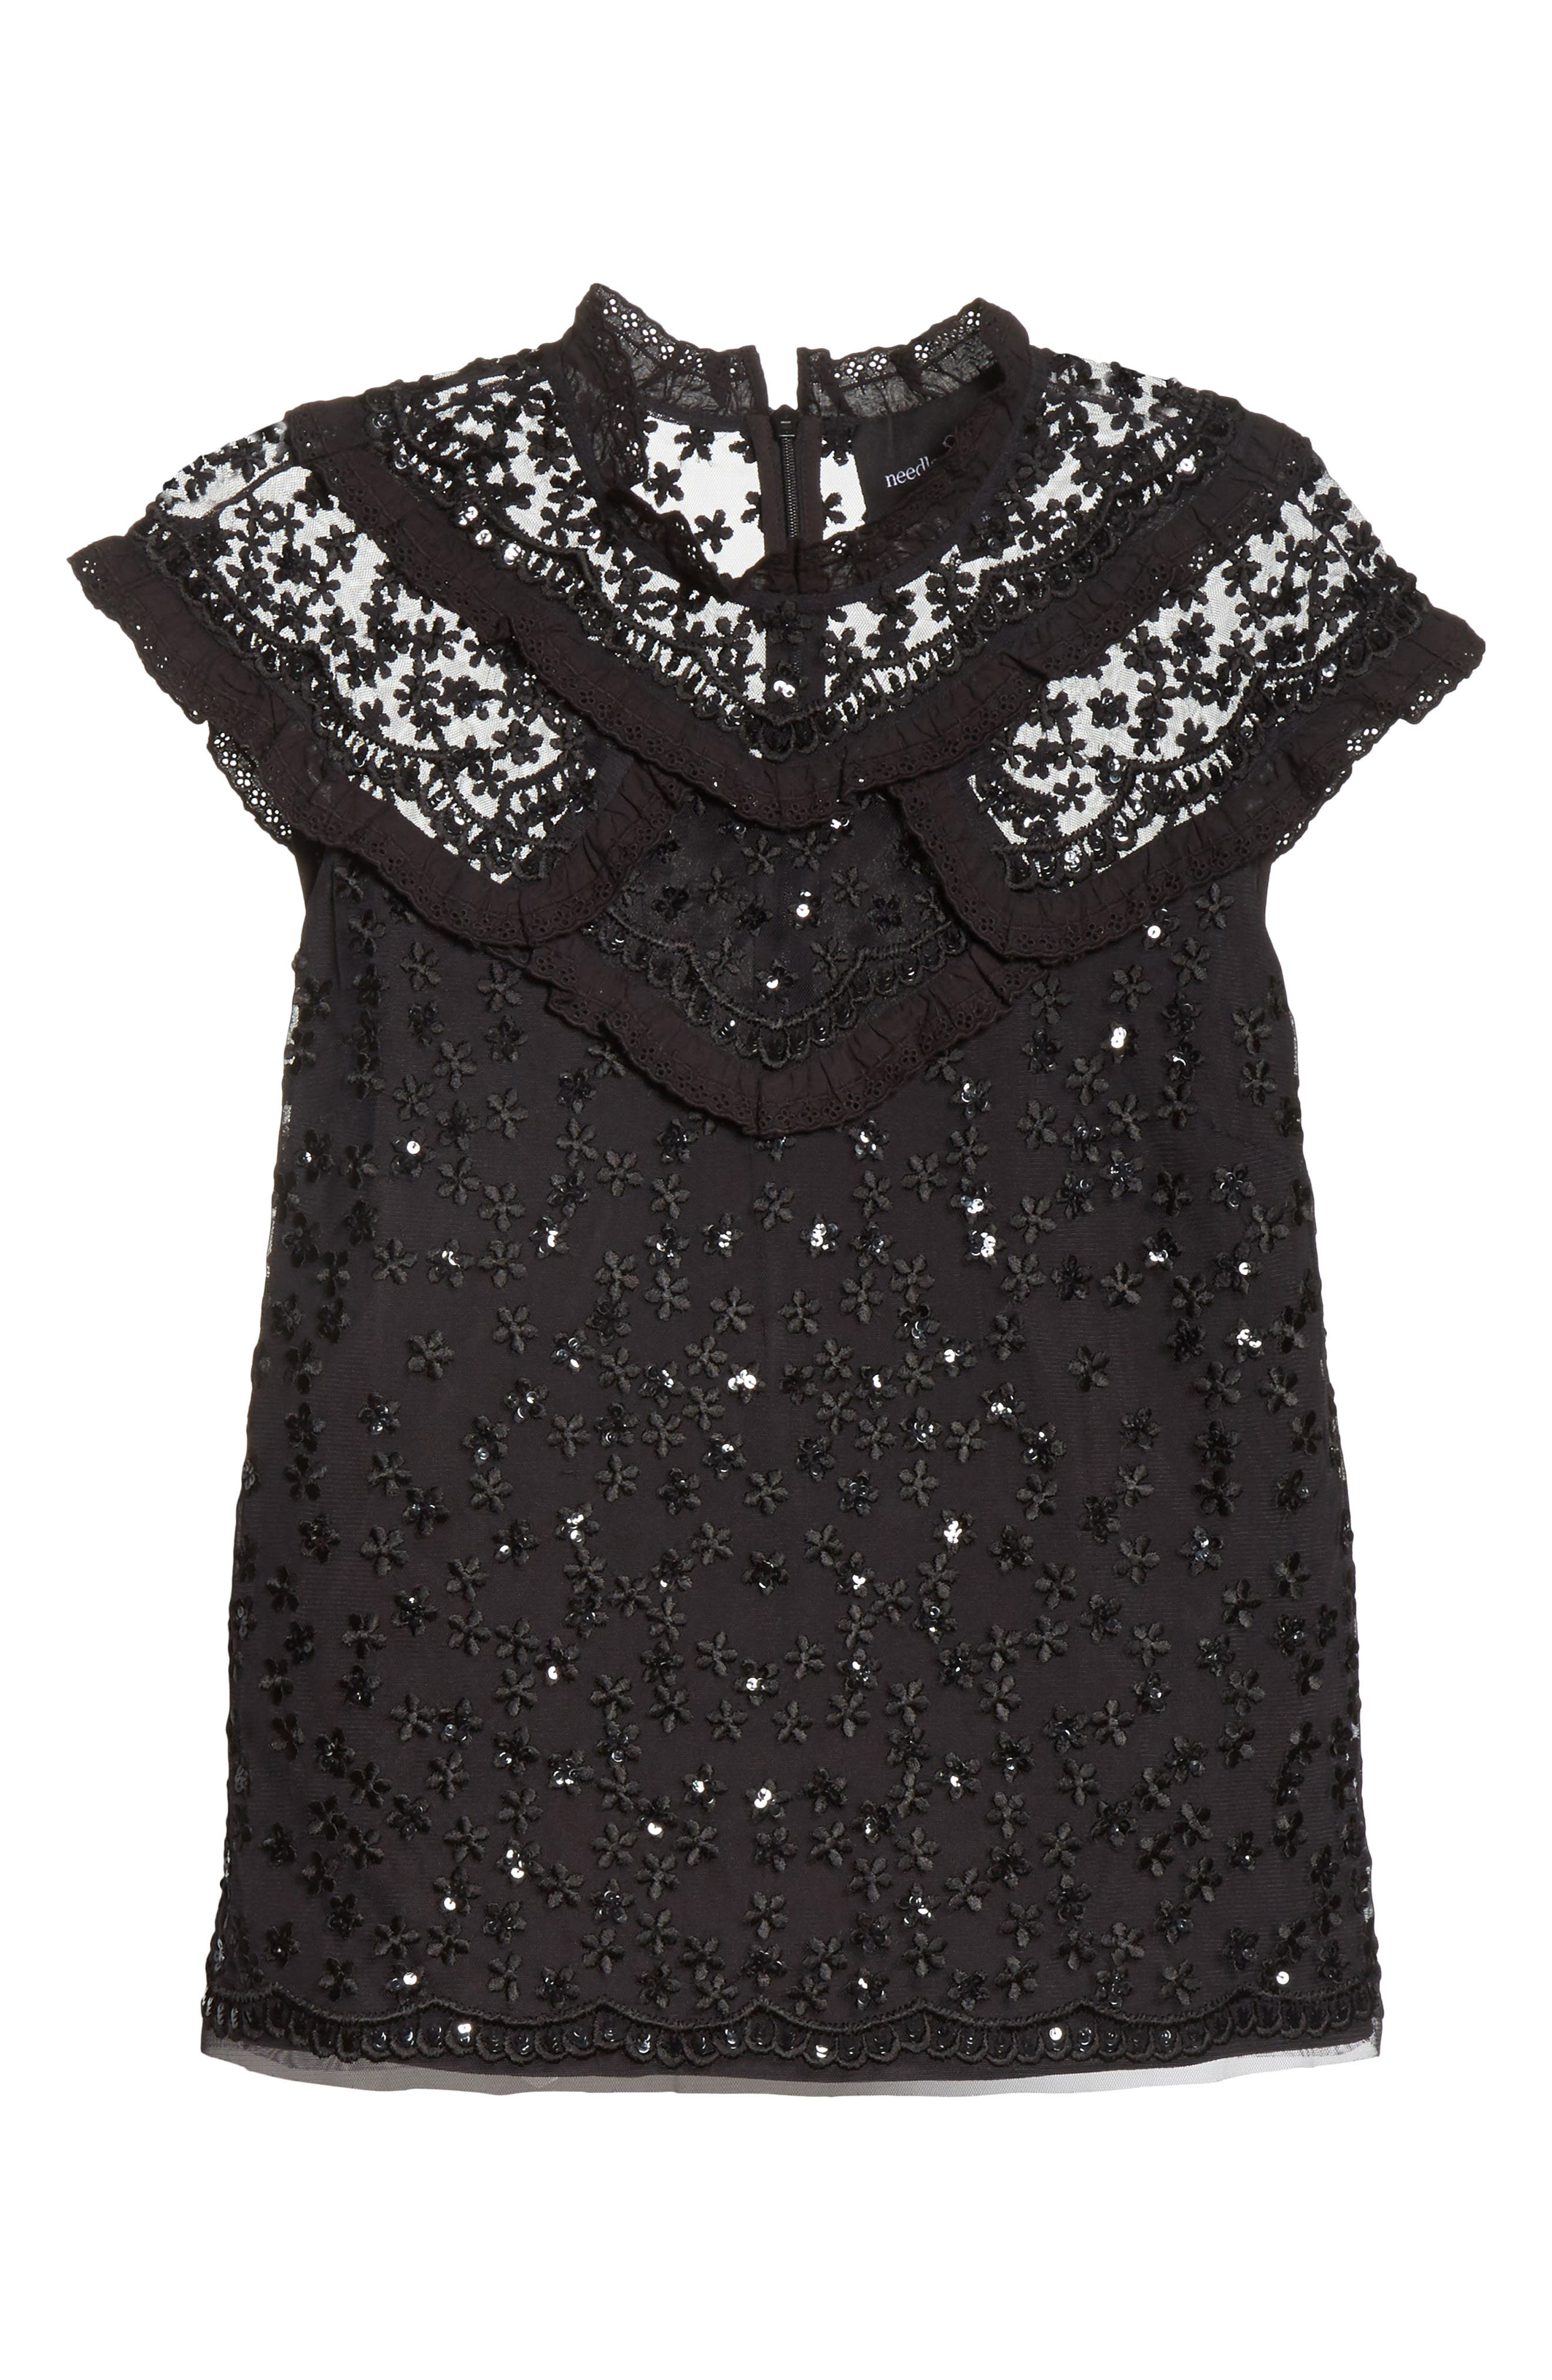 Daisy Sequin Embroidered Top,                             Alternate thumbnail 6, color,                             001